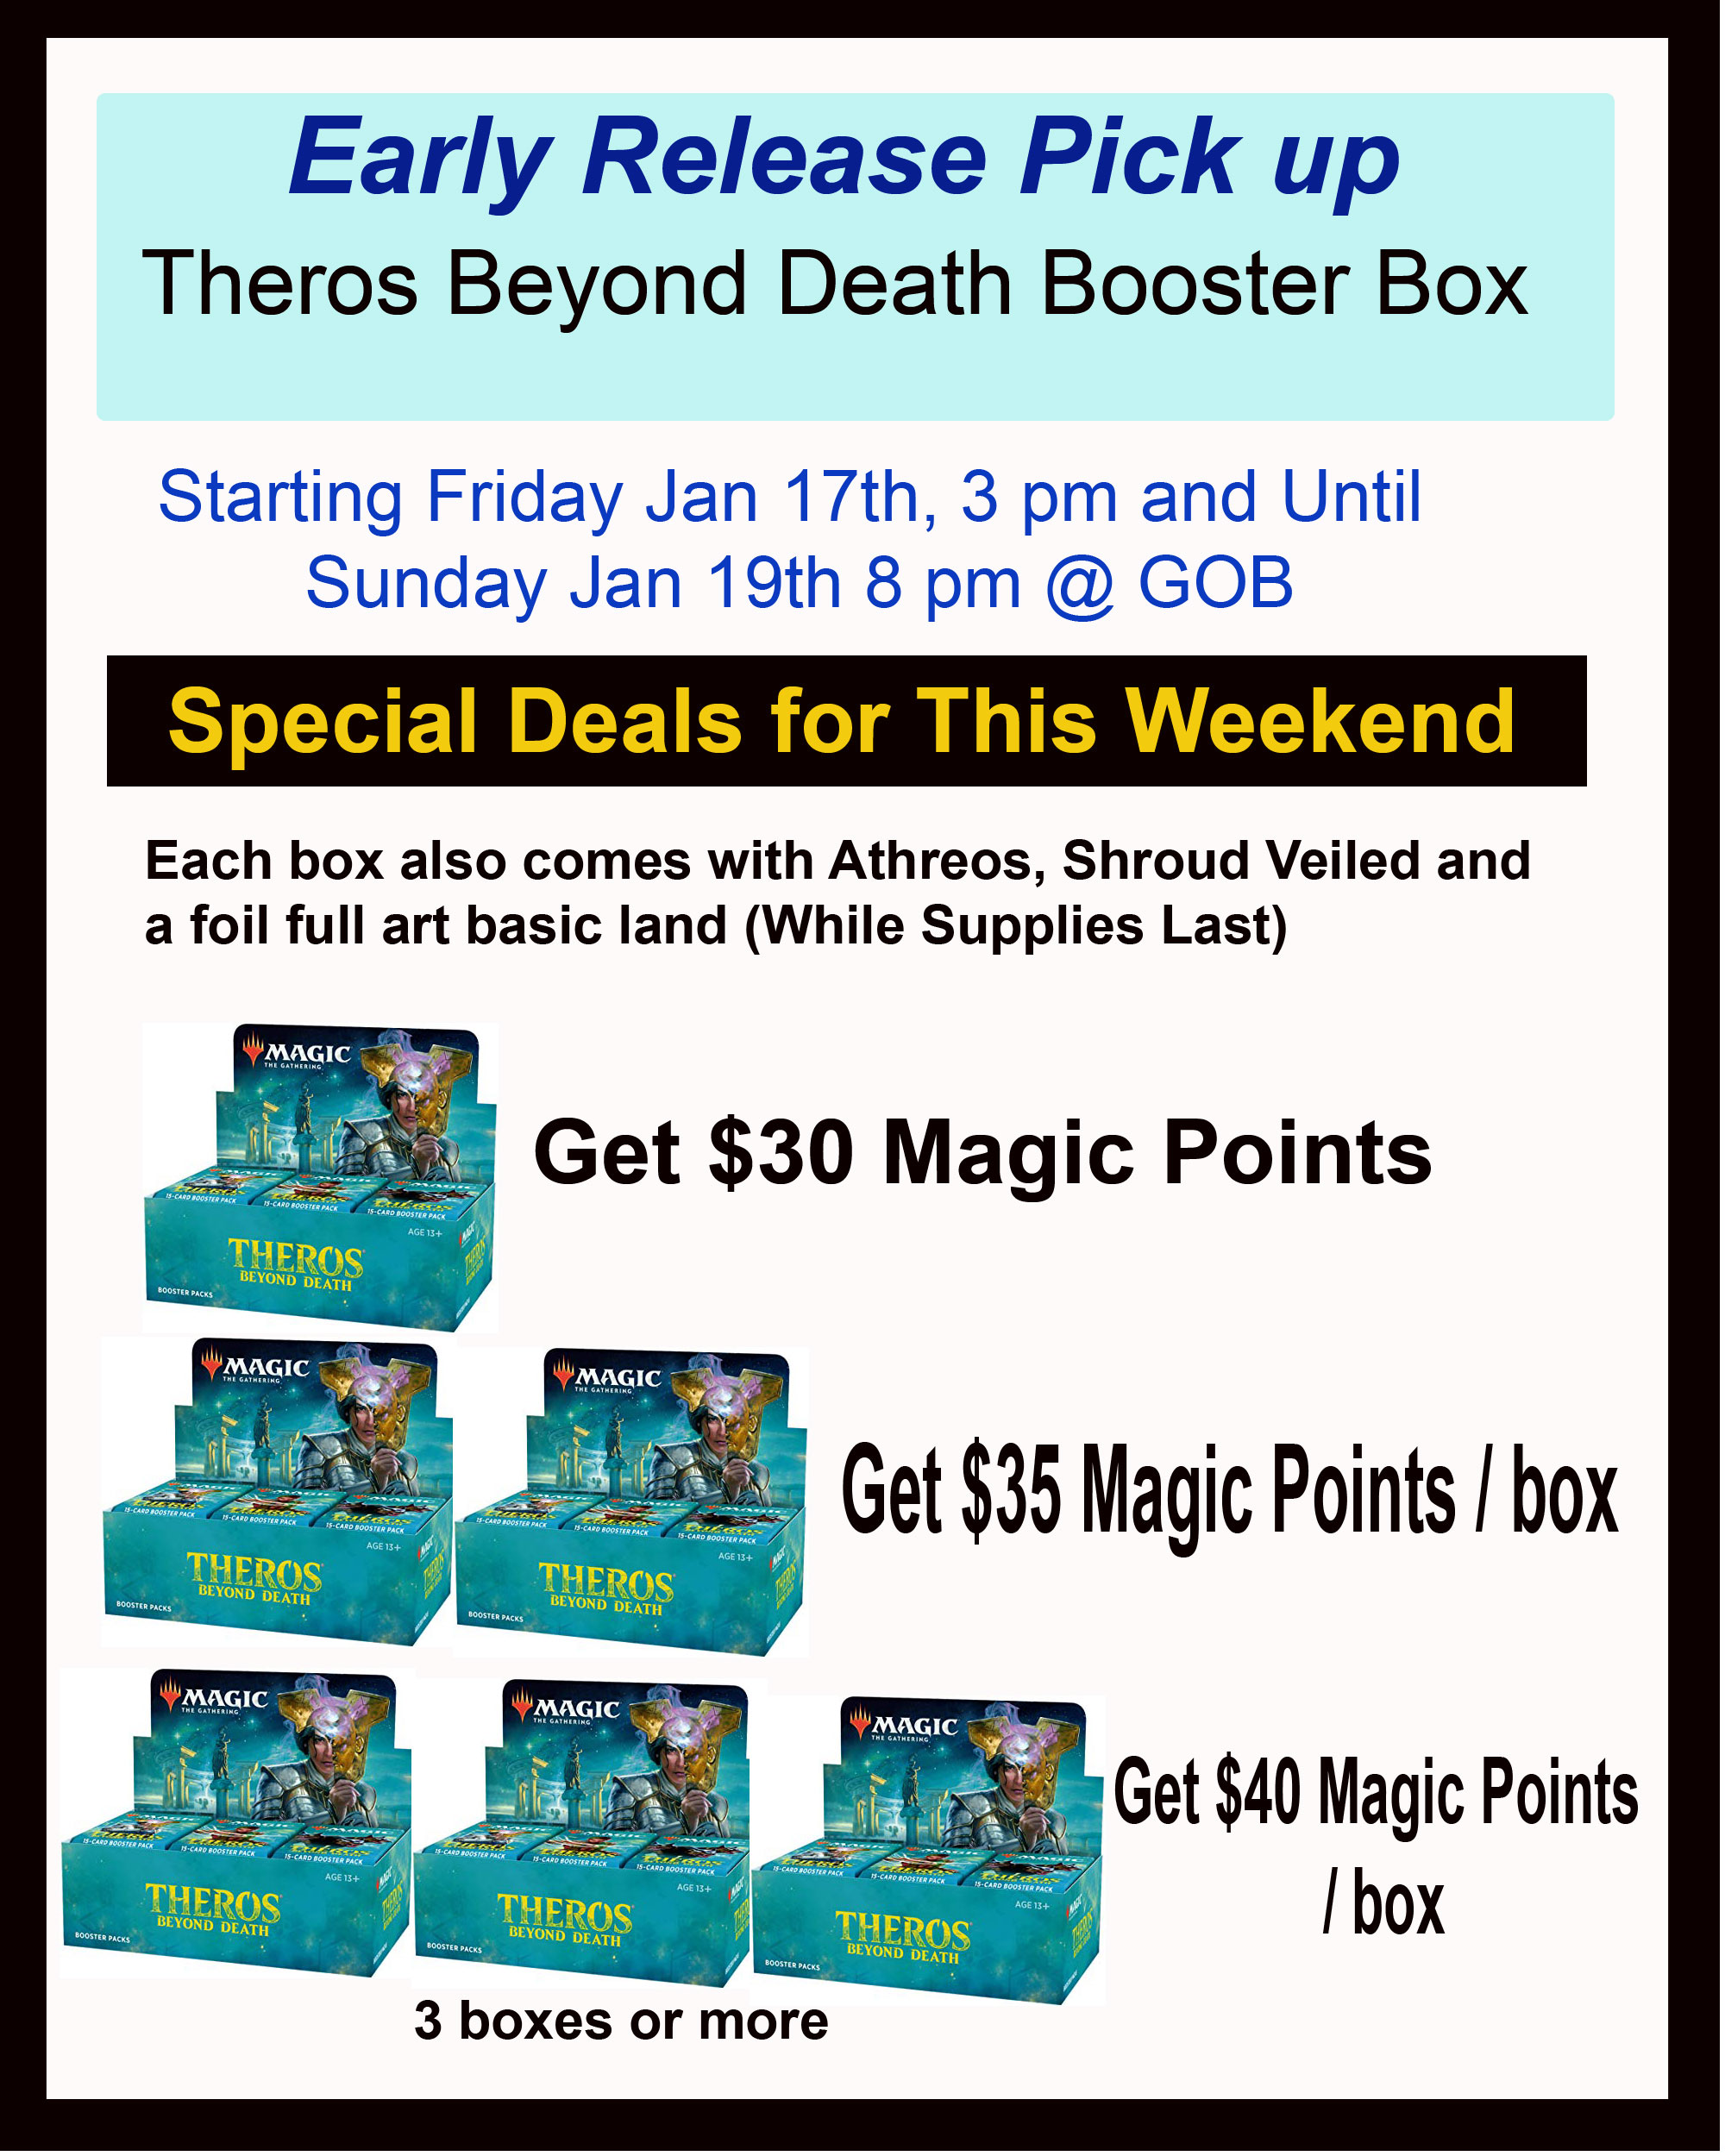 Magic the Gathering: Theros Beyond Death Booster Box Early Release